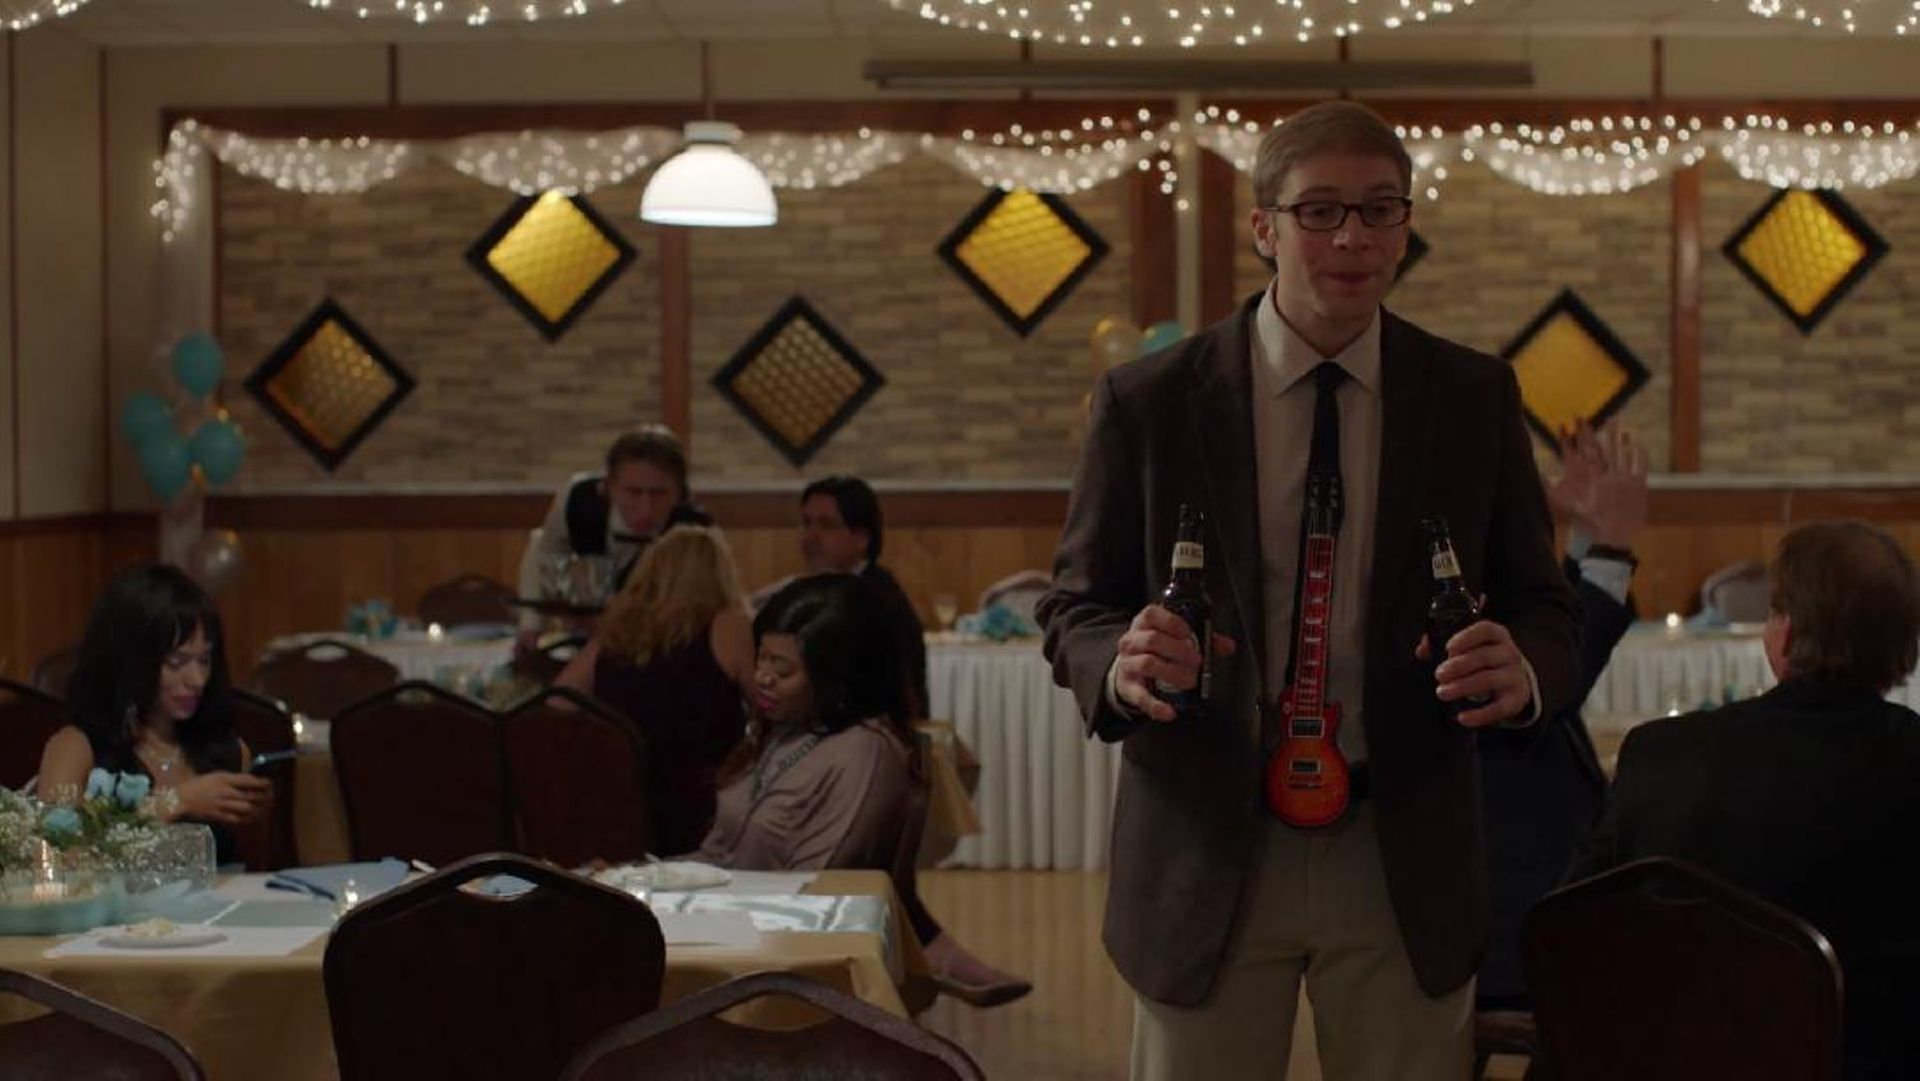 Joe Pera On 'Dance'